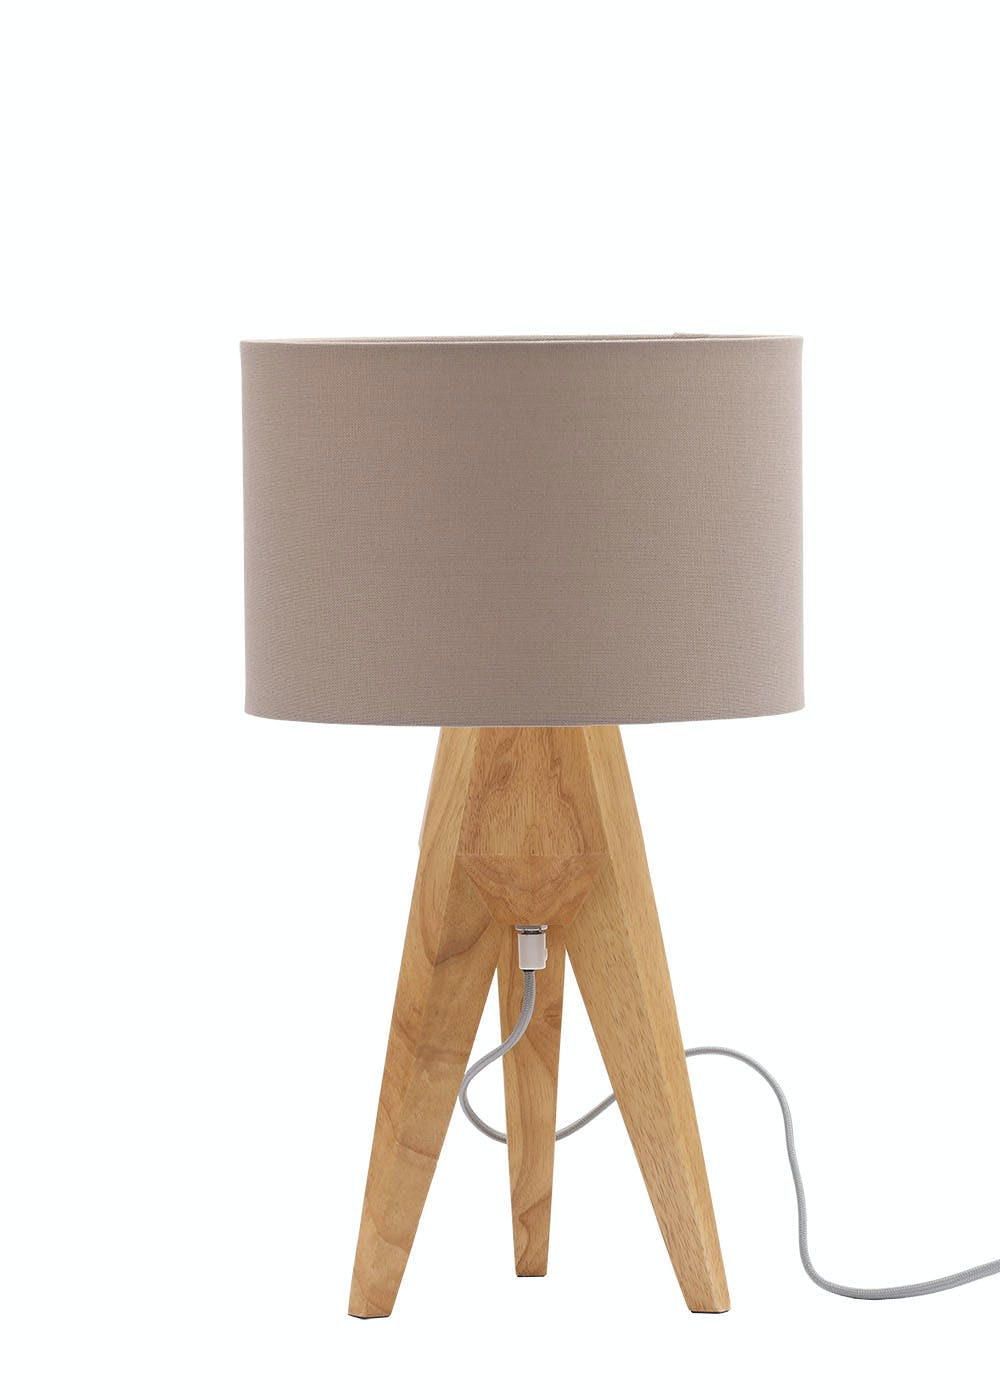 Tarvos tripod table lamp h52cm x w30cm brown matalan tarvos tripod table lamp h52cm x w30cm aloadofball Images